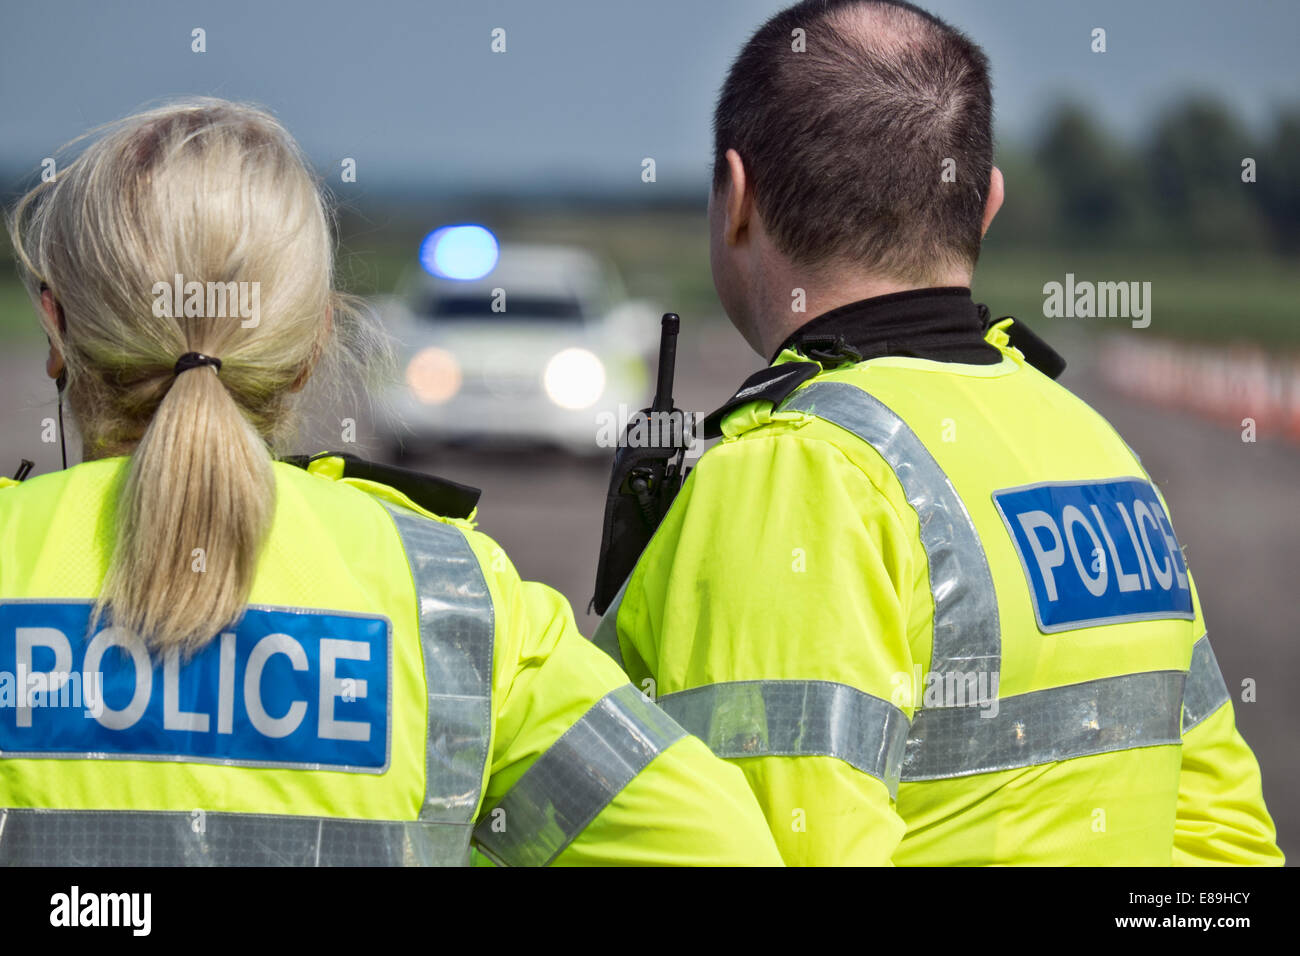 Uniformed British Police officers awaiting the arrival of their colleagues at an incident - Stock Image